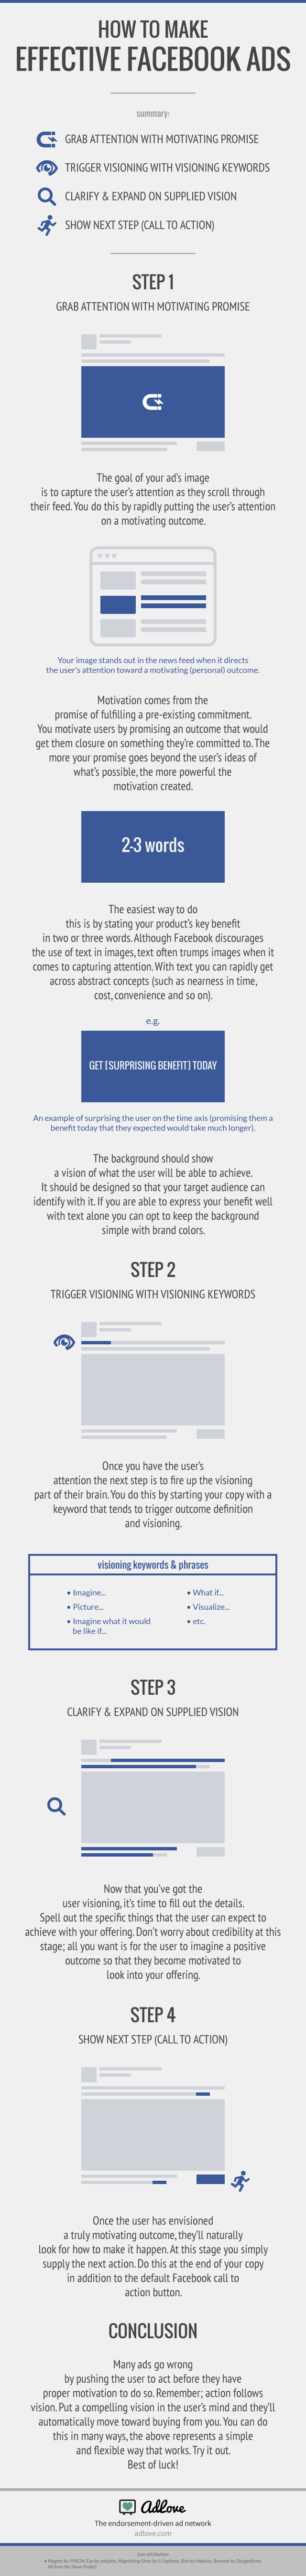 How to Make Effective Facebook Ads #Infographic